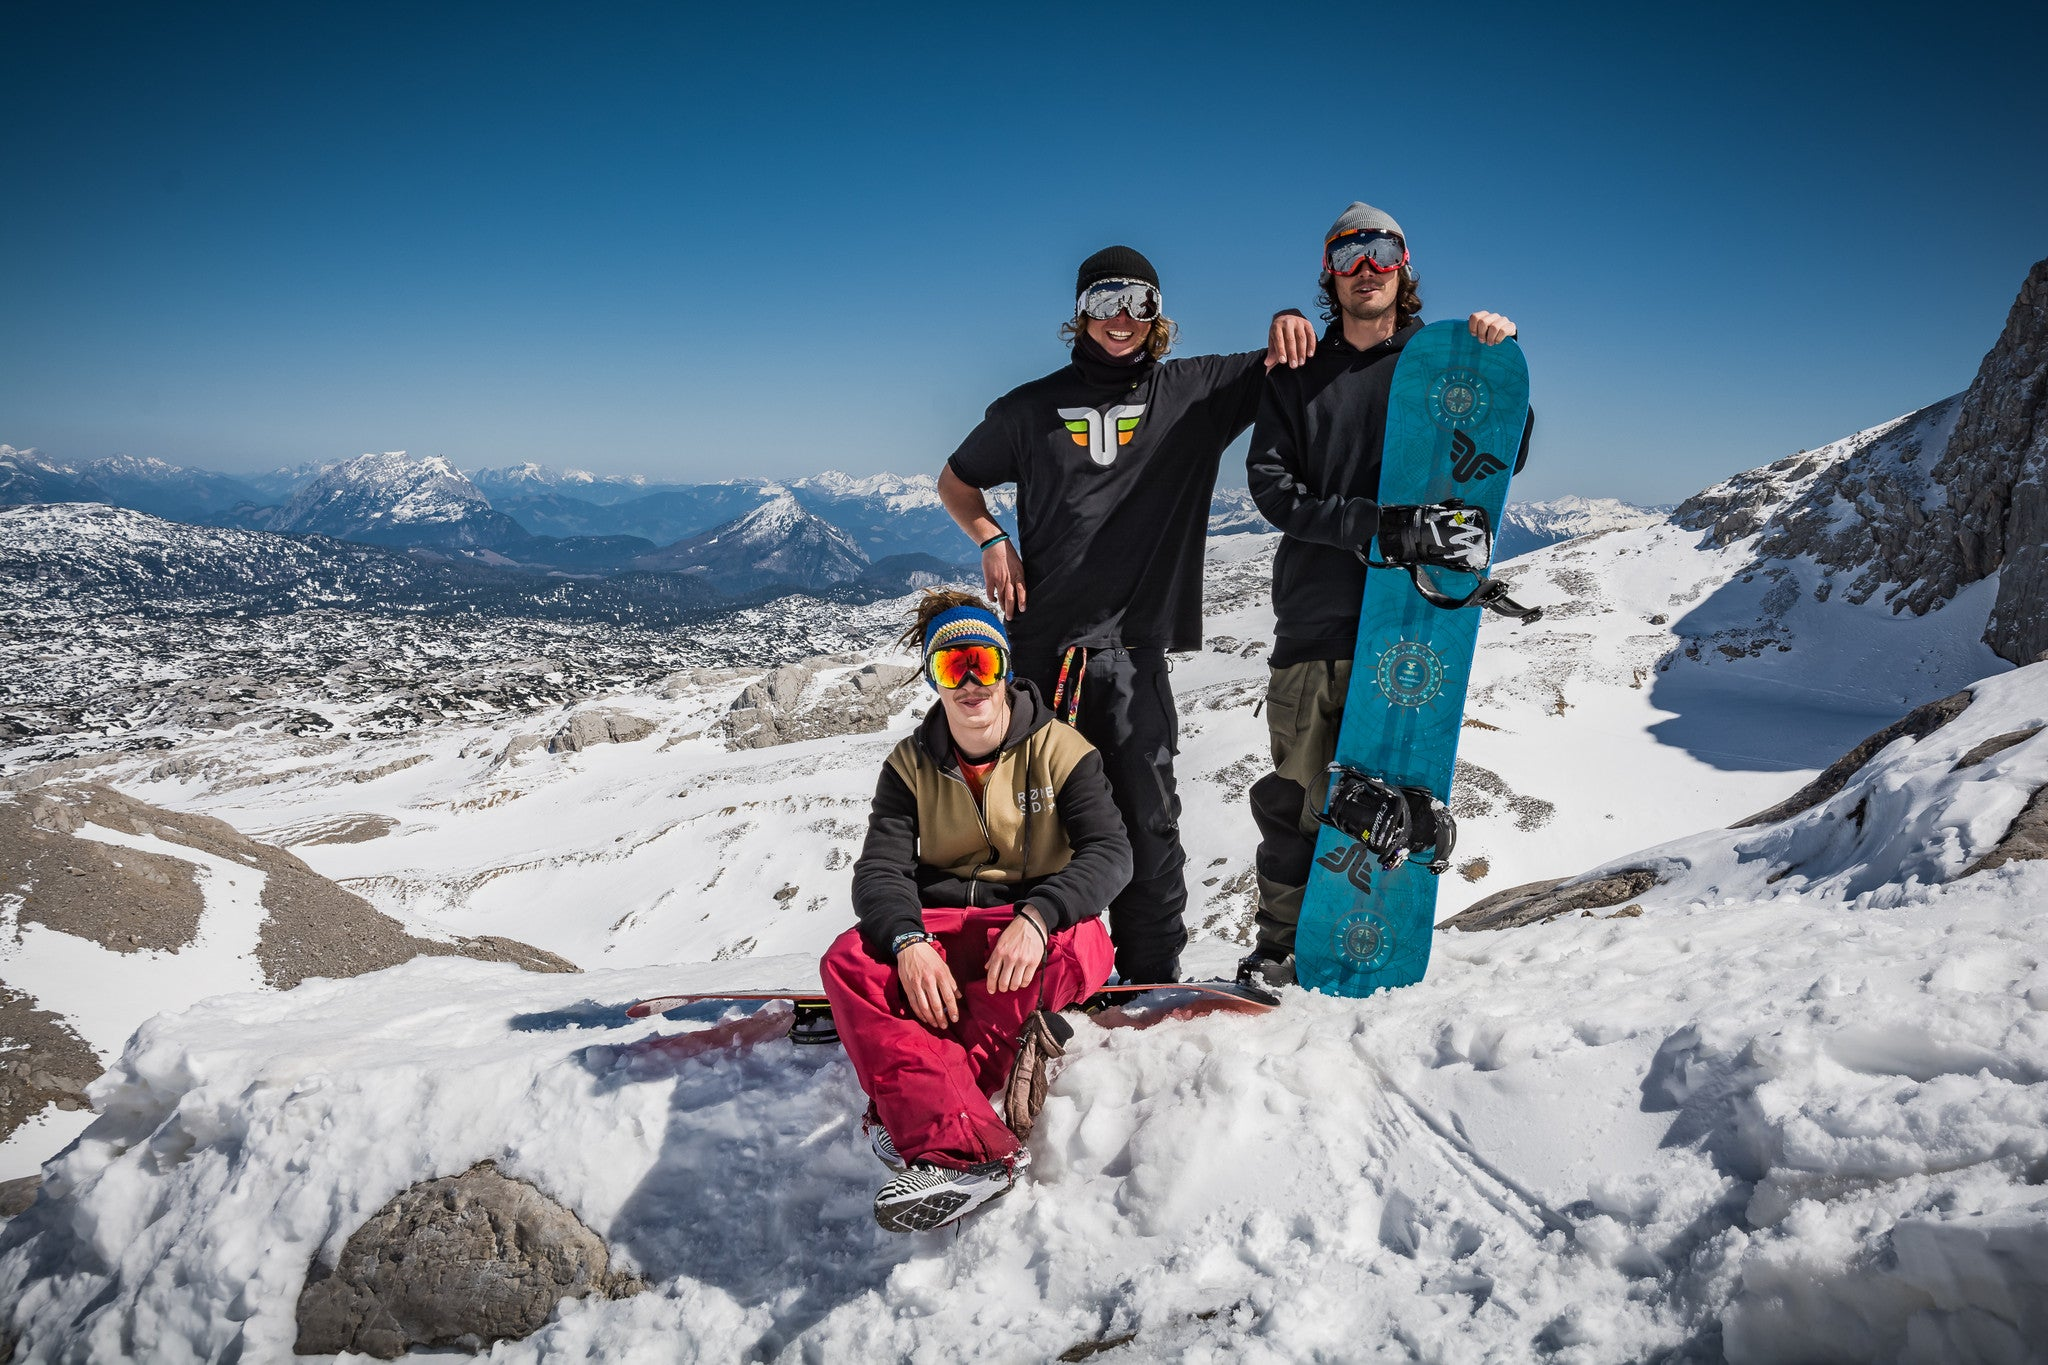 Thrive Team - Snowboarders - Photo: Wolf Wieser